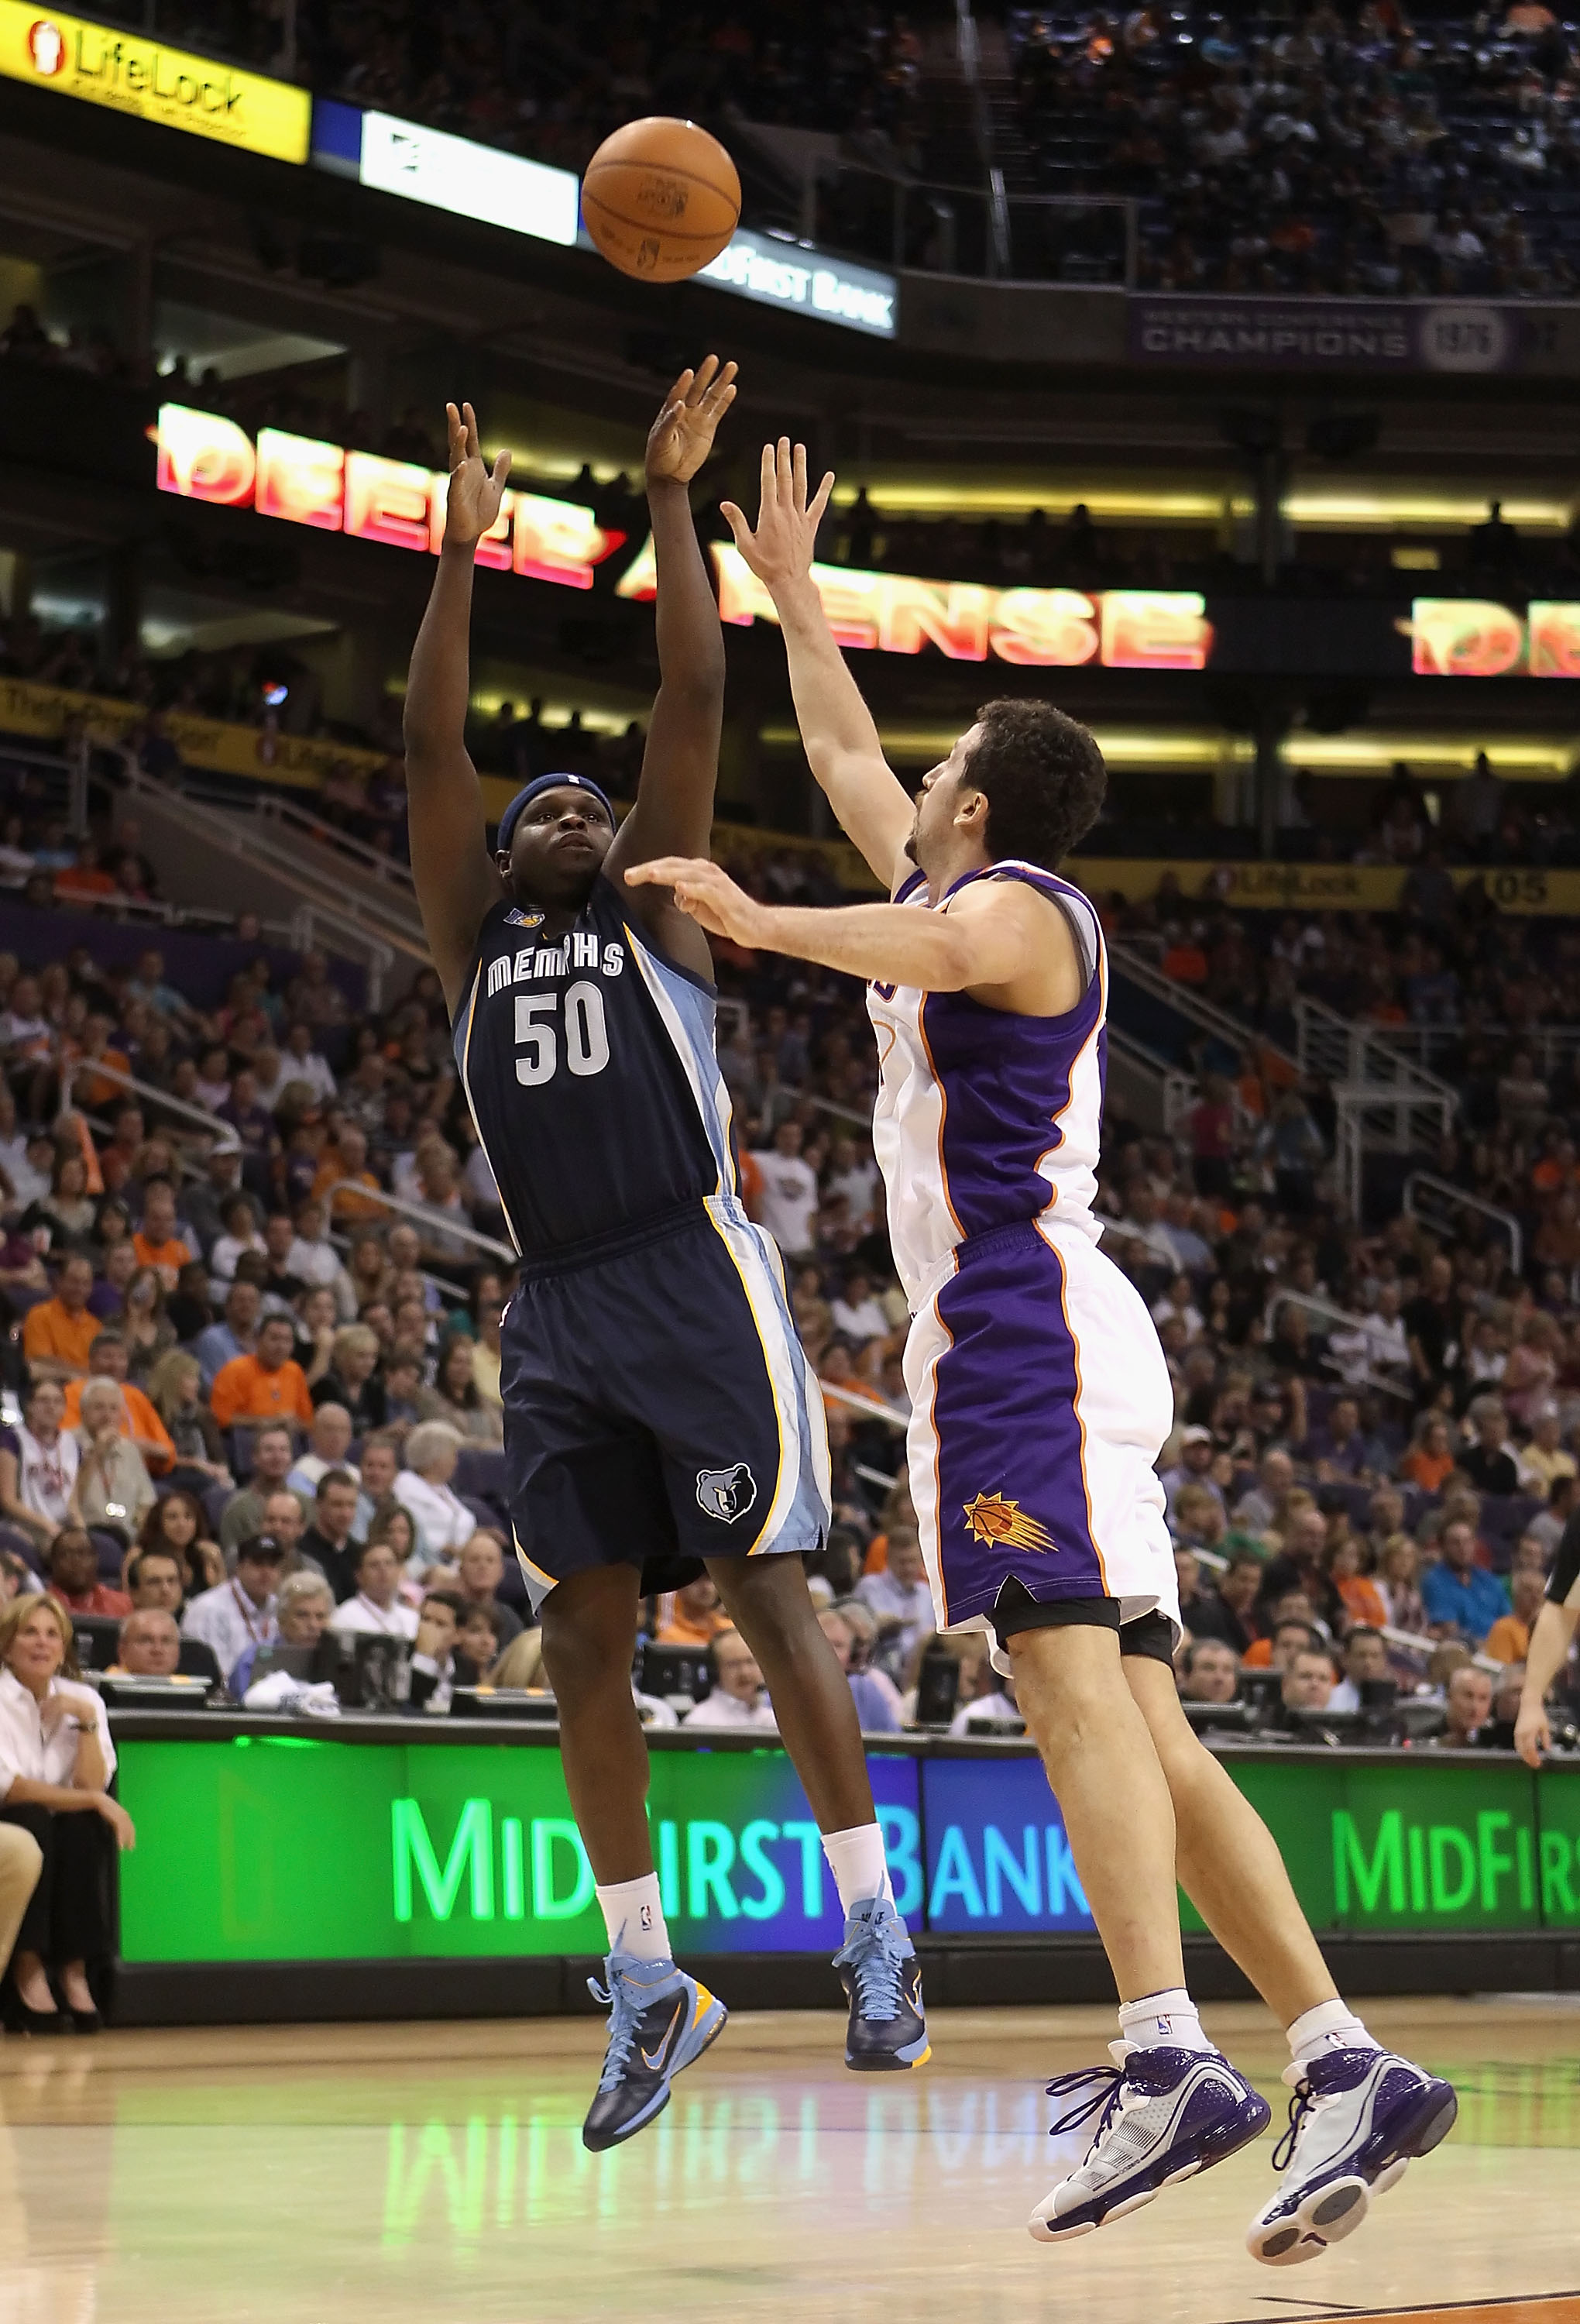 PHOENIX - NOVEMBER 05:  Zach Randolph #50 of the Memphis Grizzlies puts up a shot during the NBA game against the Phoenix Suns at US Airways Center on November 5, 2010 in Phoenix, Arizona. NOTE TO USER: User expressly acknowledges and agrees that, by down